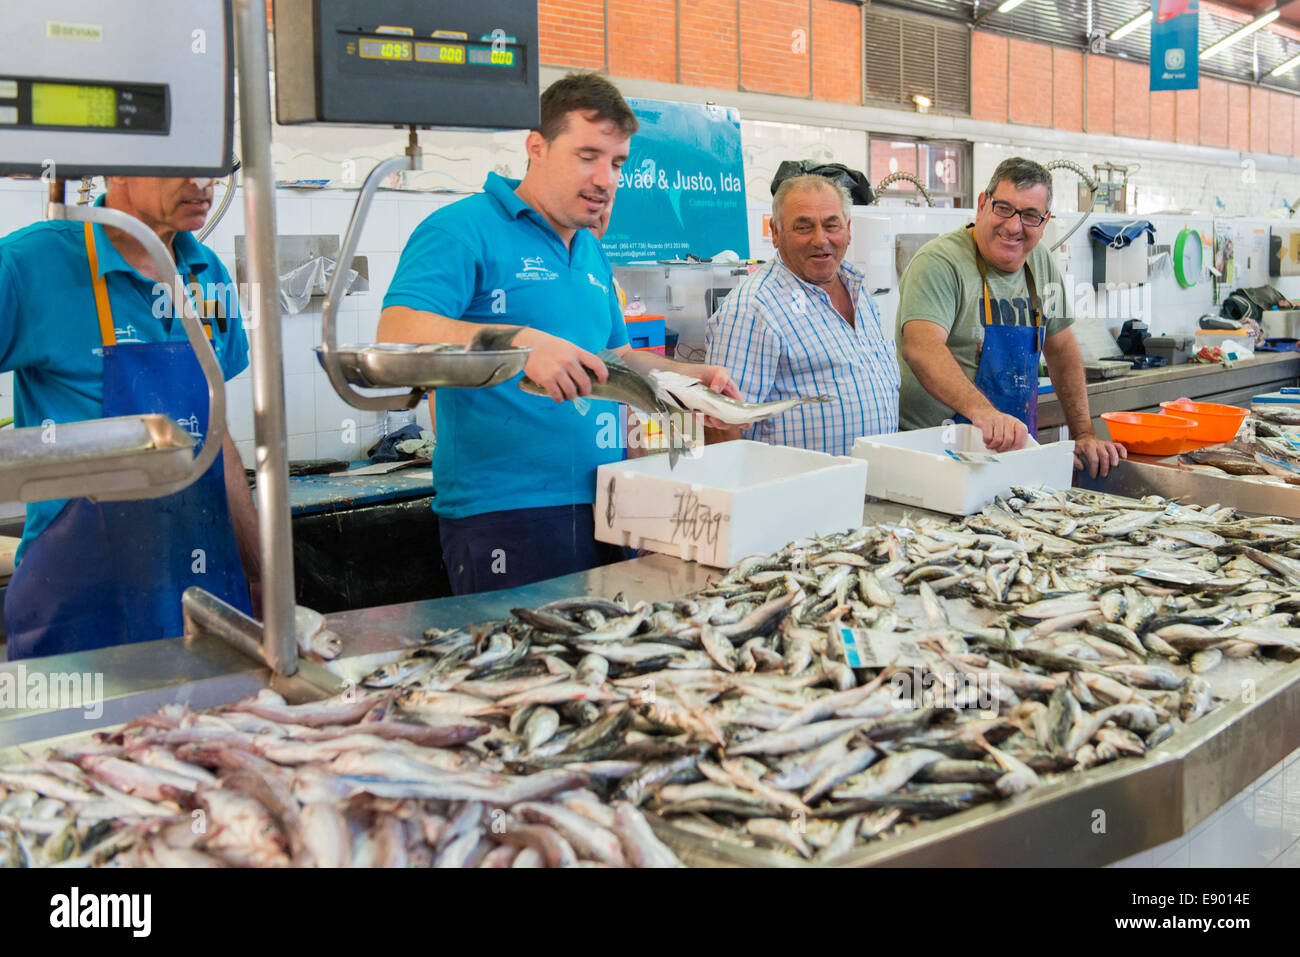 Portugal Algarve Olhoa fish market counter sardines sardine men unpacking - Stock Image